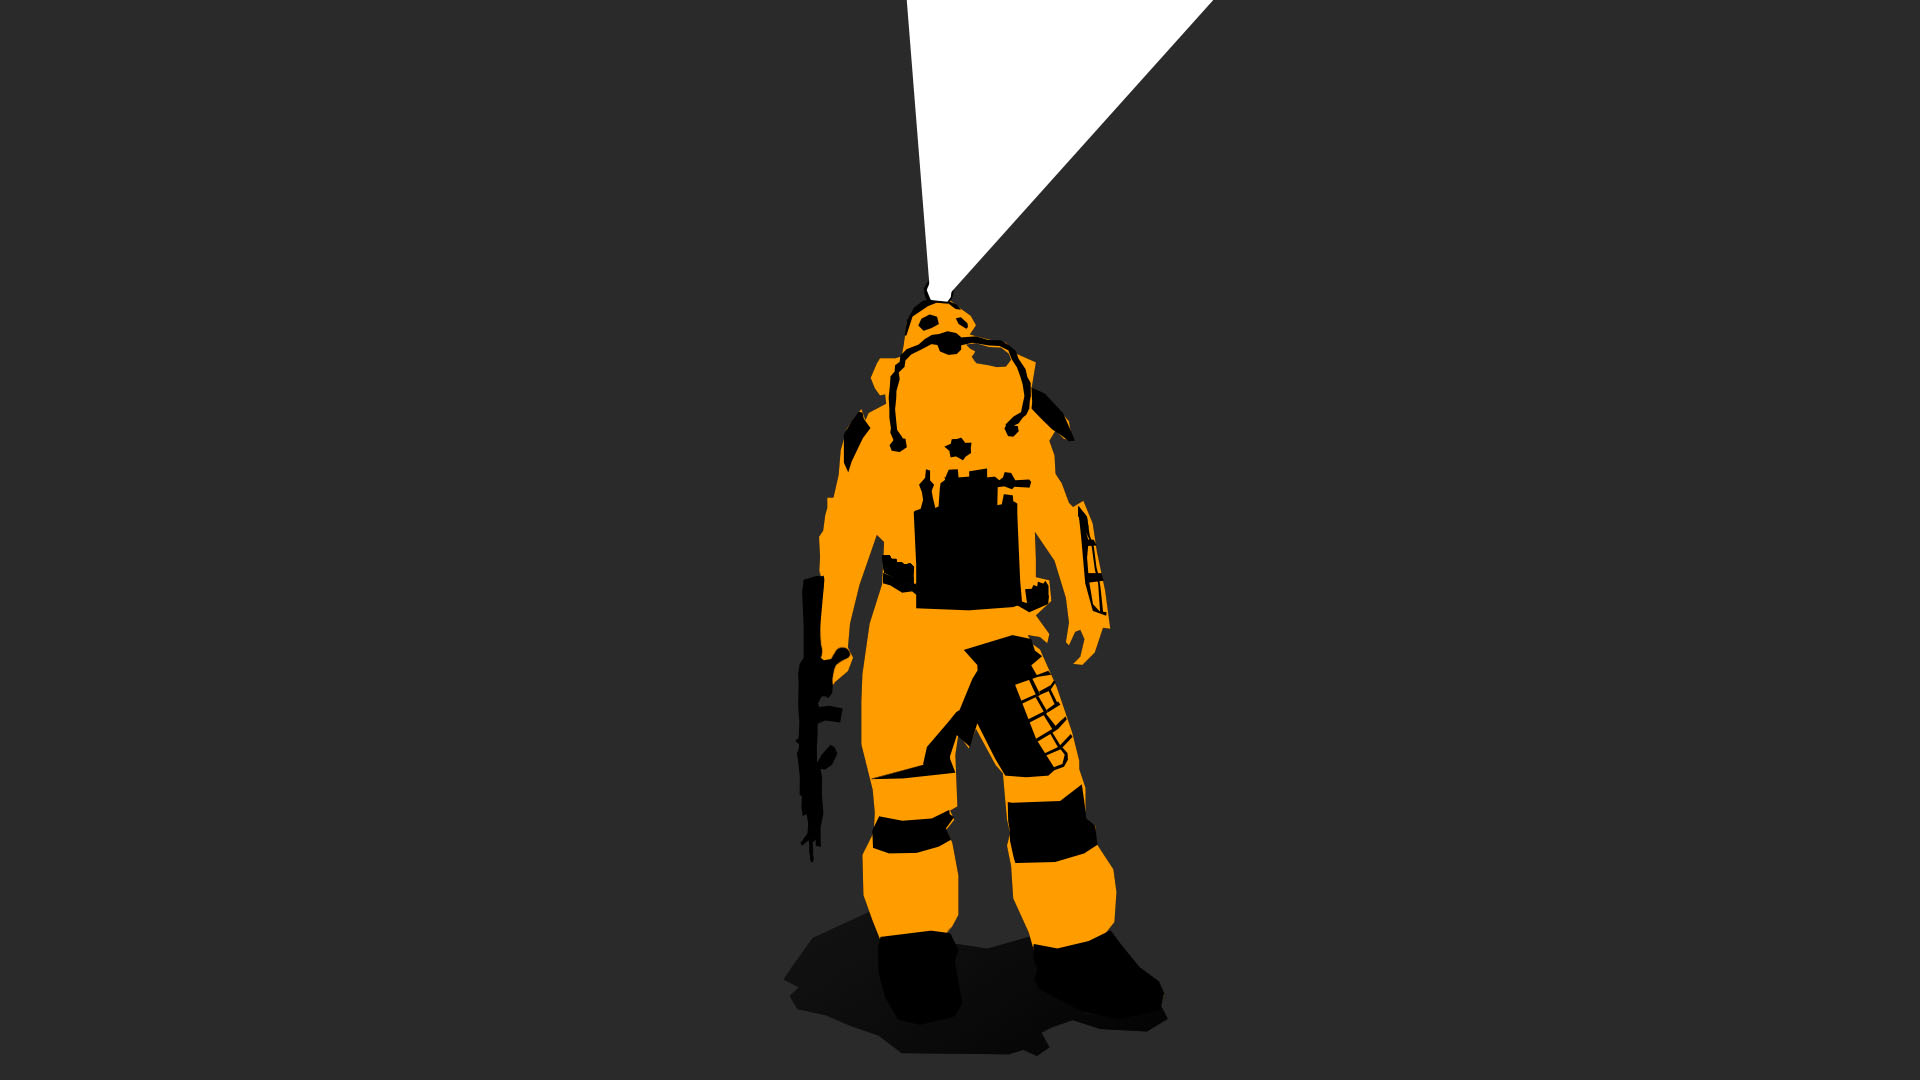 Metro Last Light Minimalistic By Dannster On Deviantart